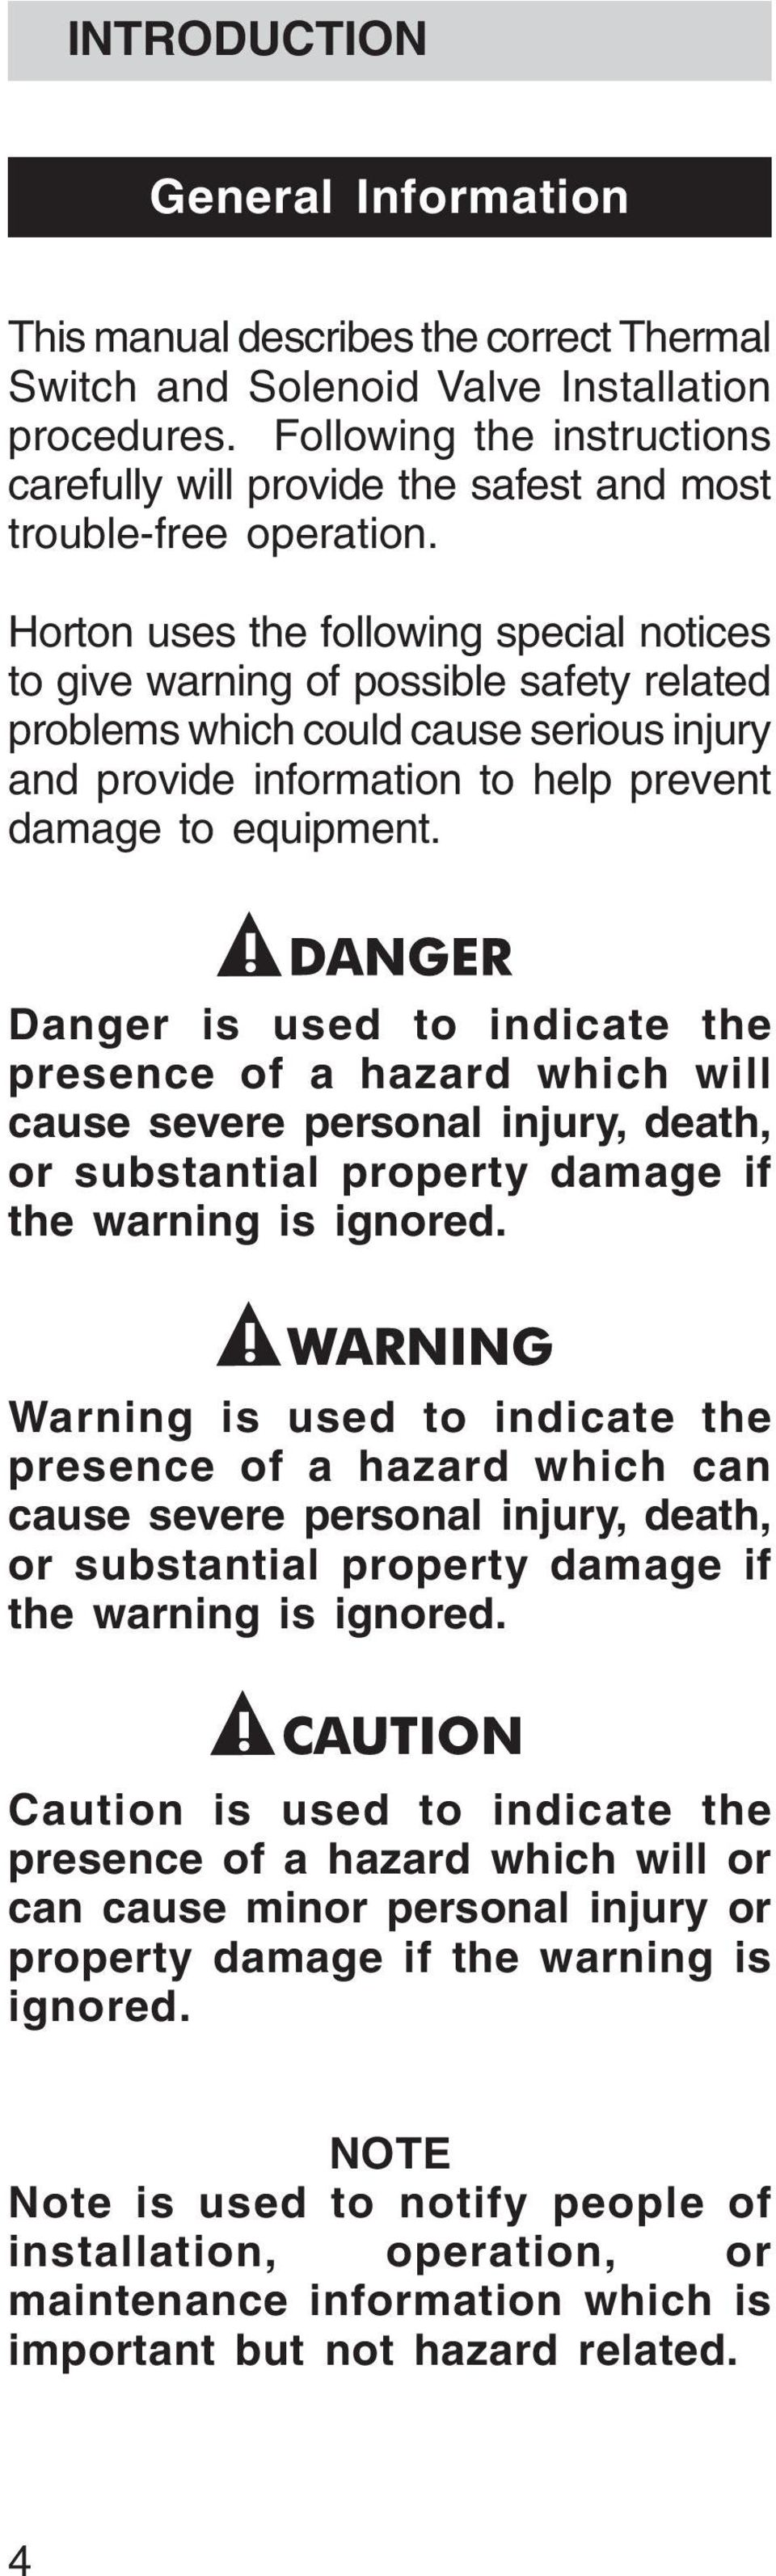 Horton uses the following special notices to give warning of possible safety related problems which could cause serious injury and provide information to help prevent damage to equipment.